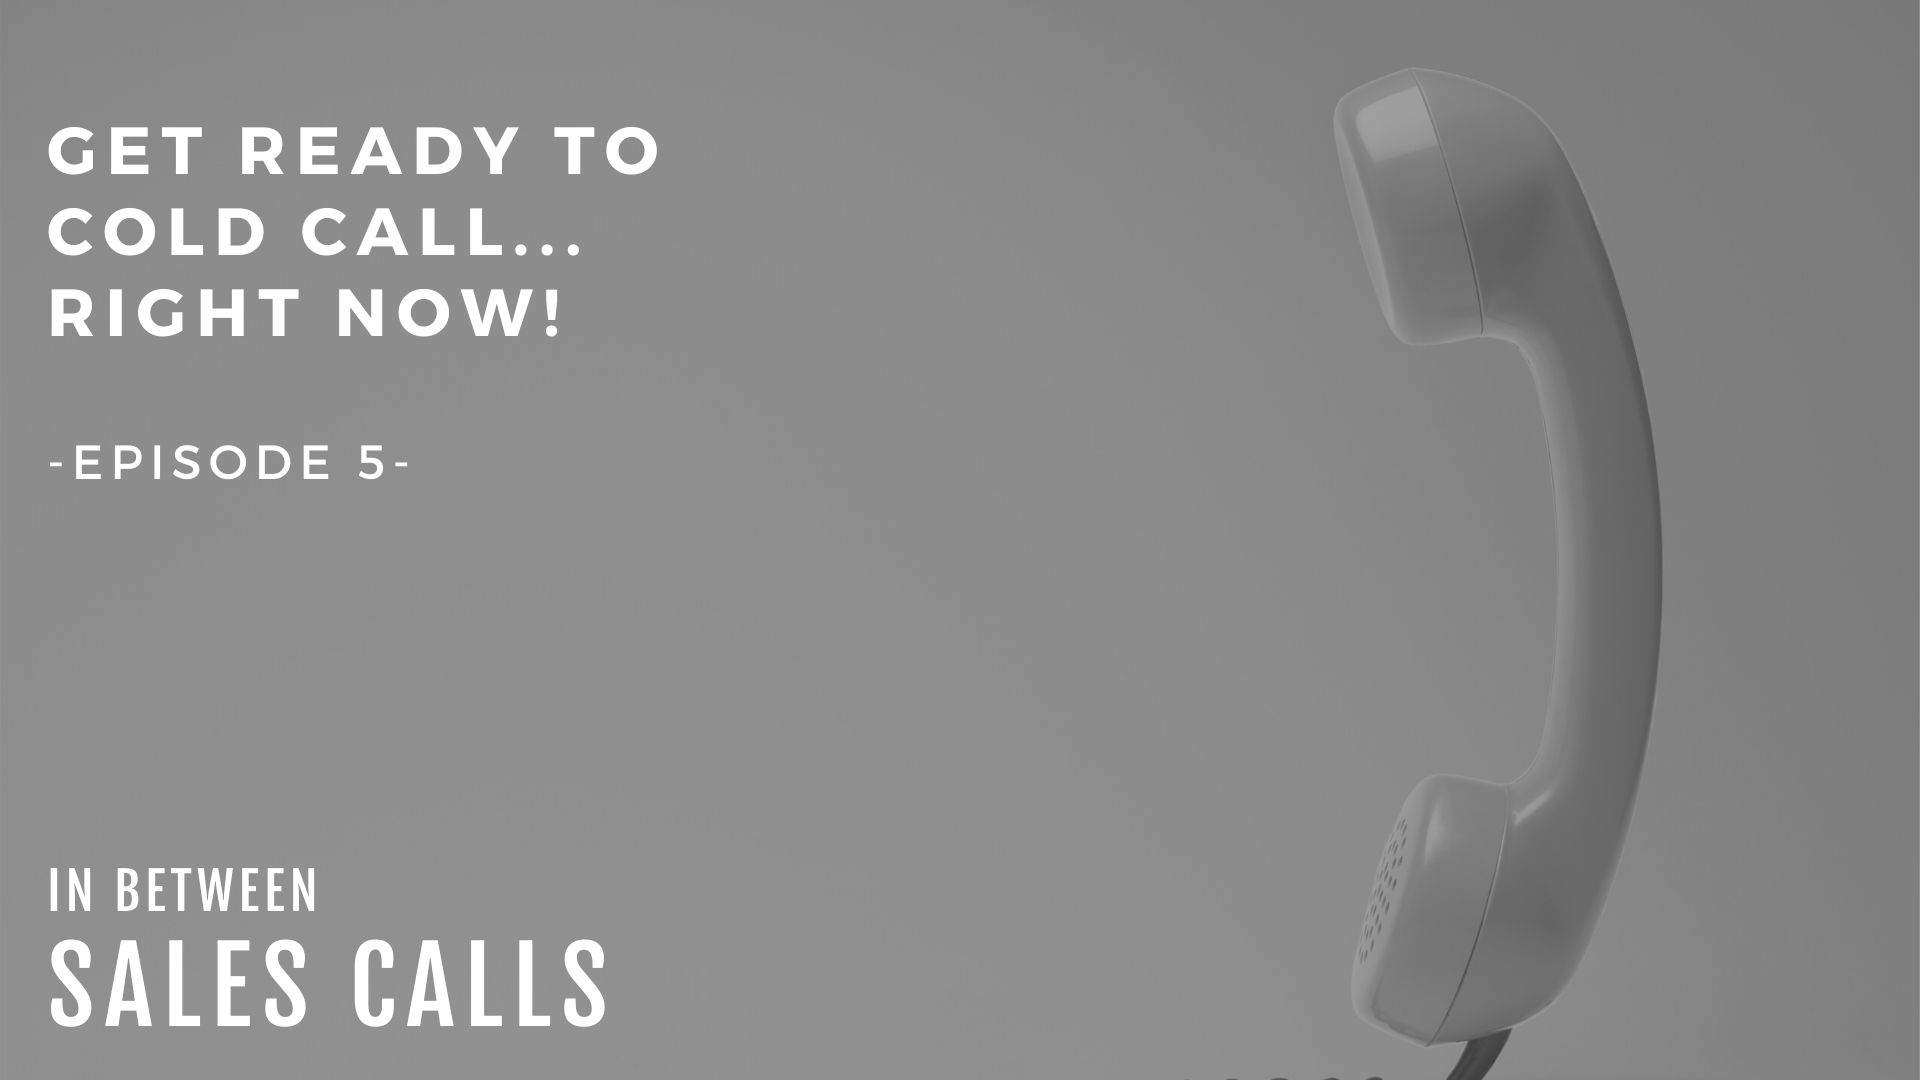 get-ready-to-cold-call-right-now-modern-sales-training-in-between-sales-calls-podcast